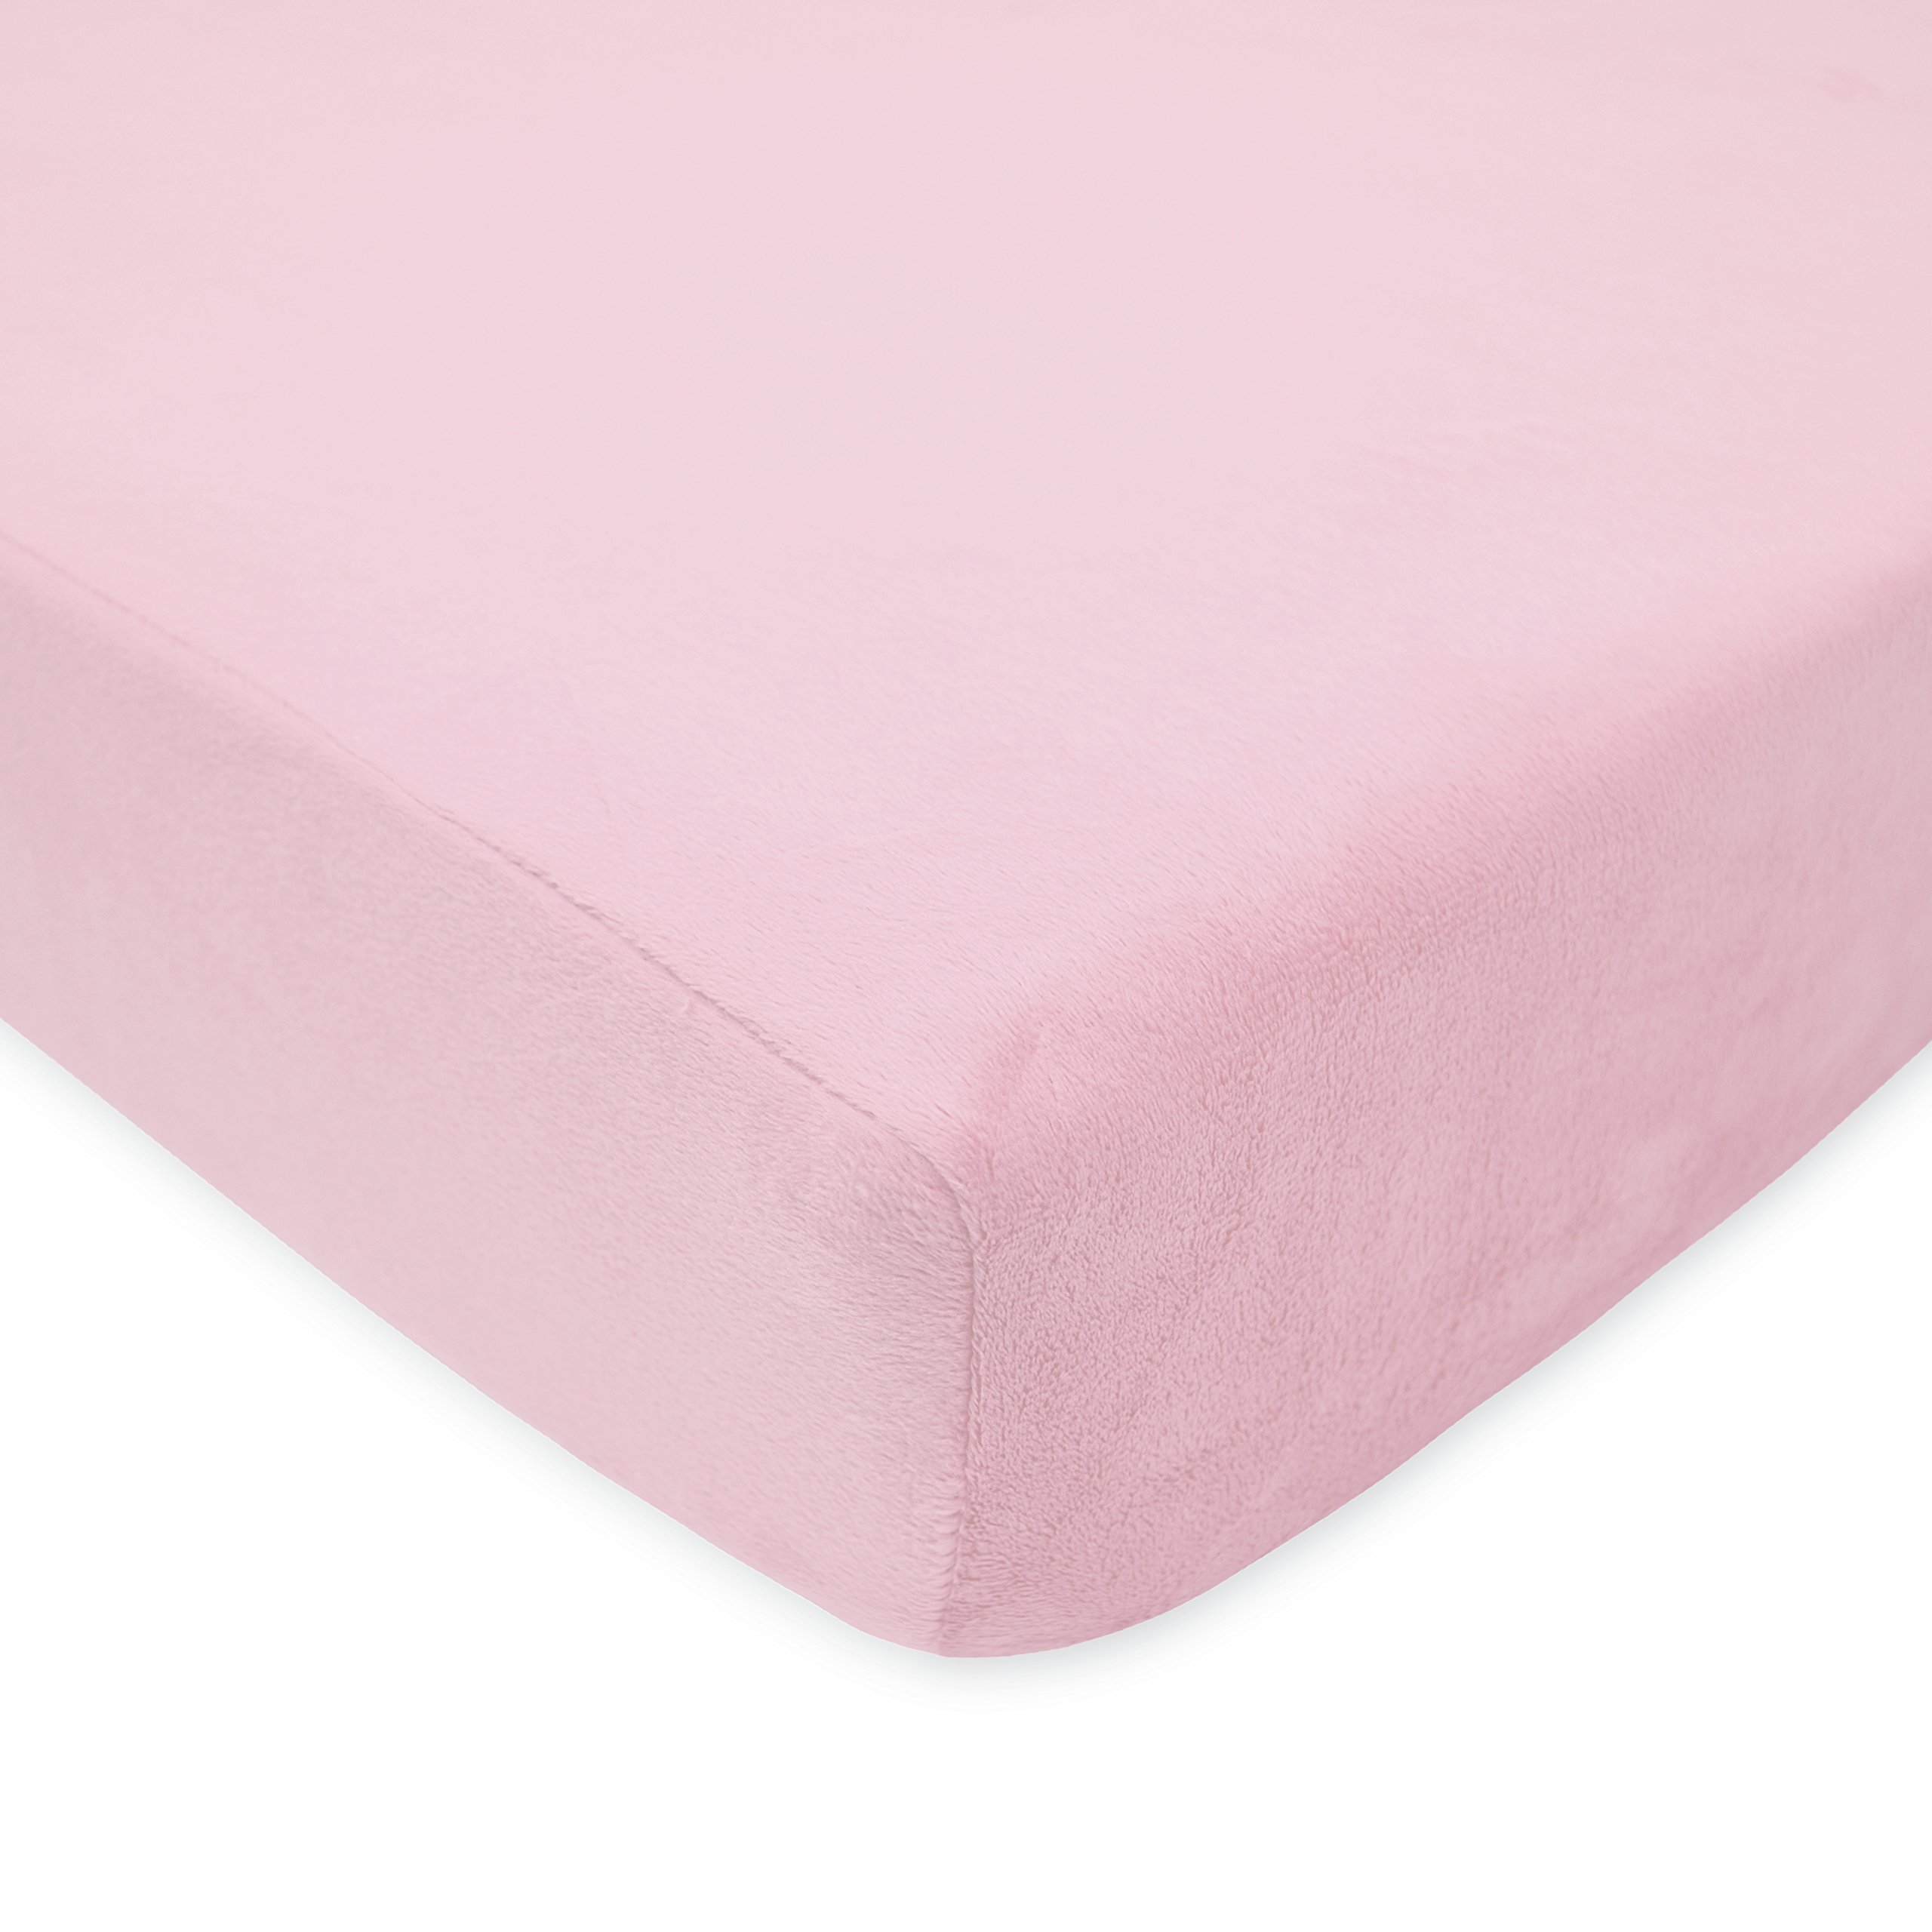 American Baby Company Heavenly Soft Chenille Fitted Crib Sheet for Standard Crib and Toddler Mattresses, Pink, for Girls, 1 Count by American Baby Company